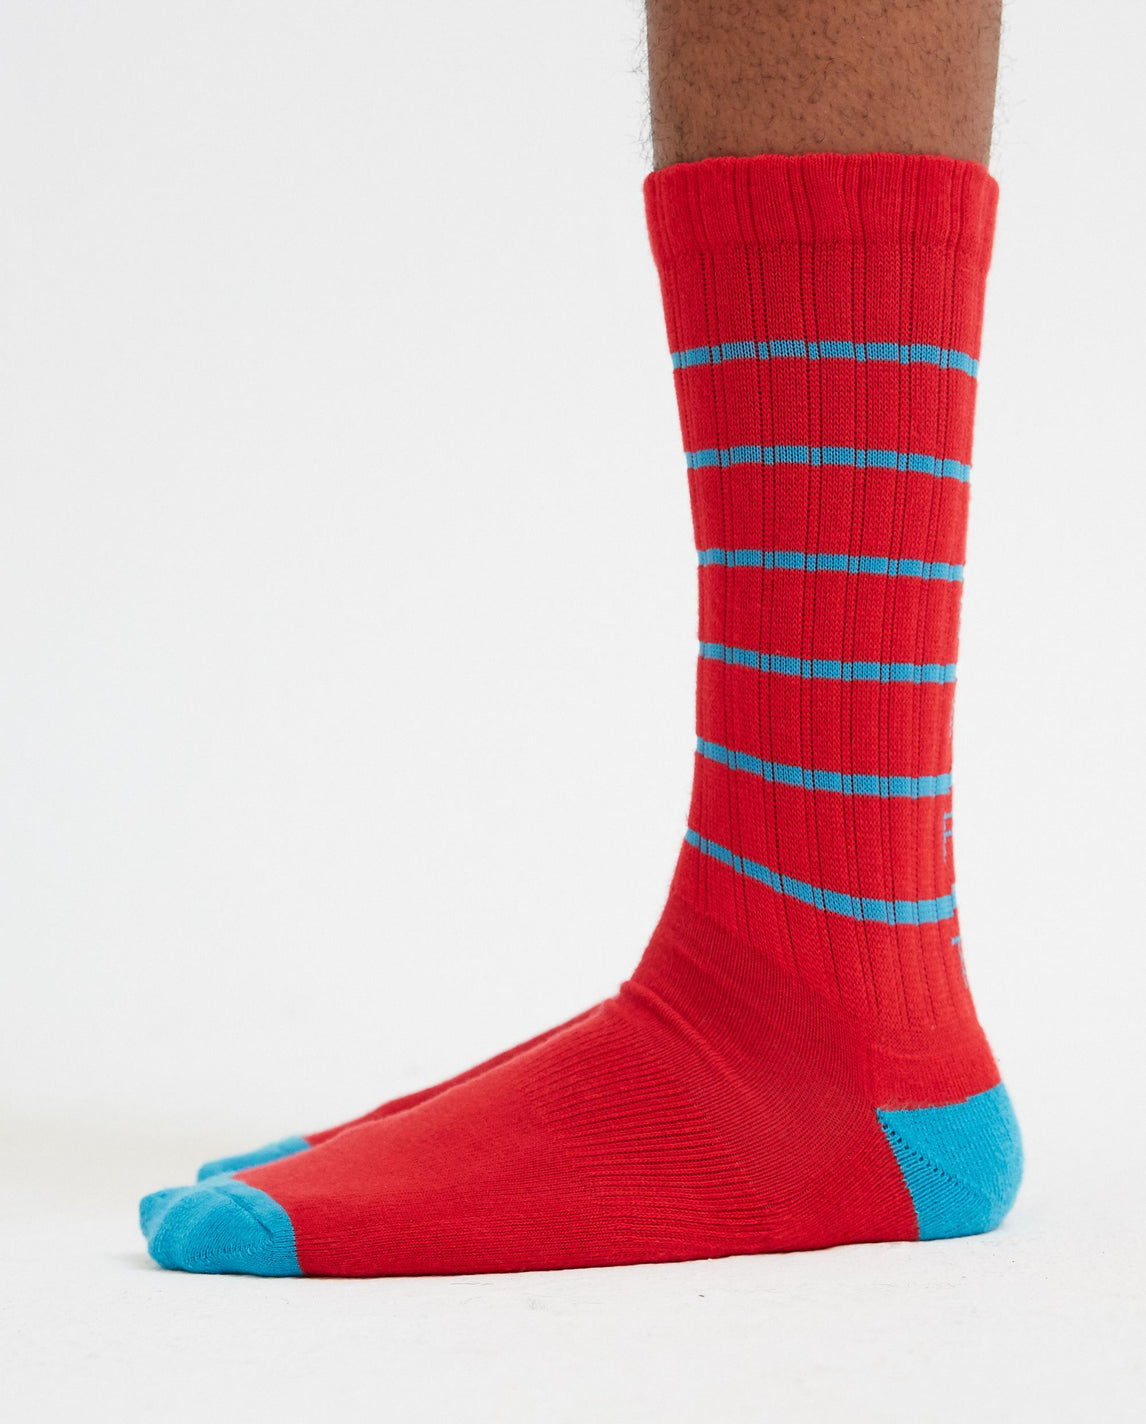 Logo Socks - Red UNISEX CAV EMPT